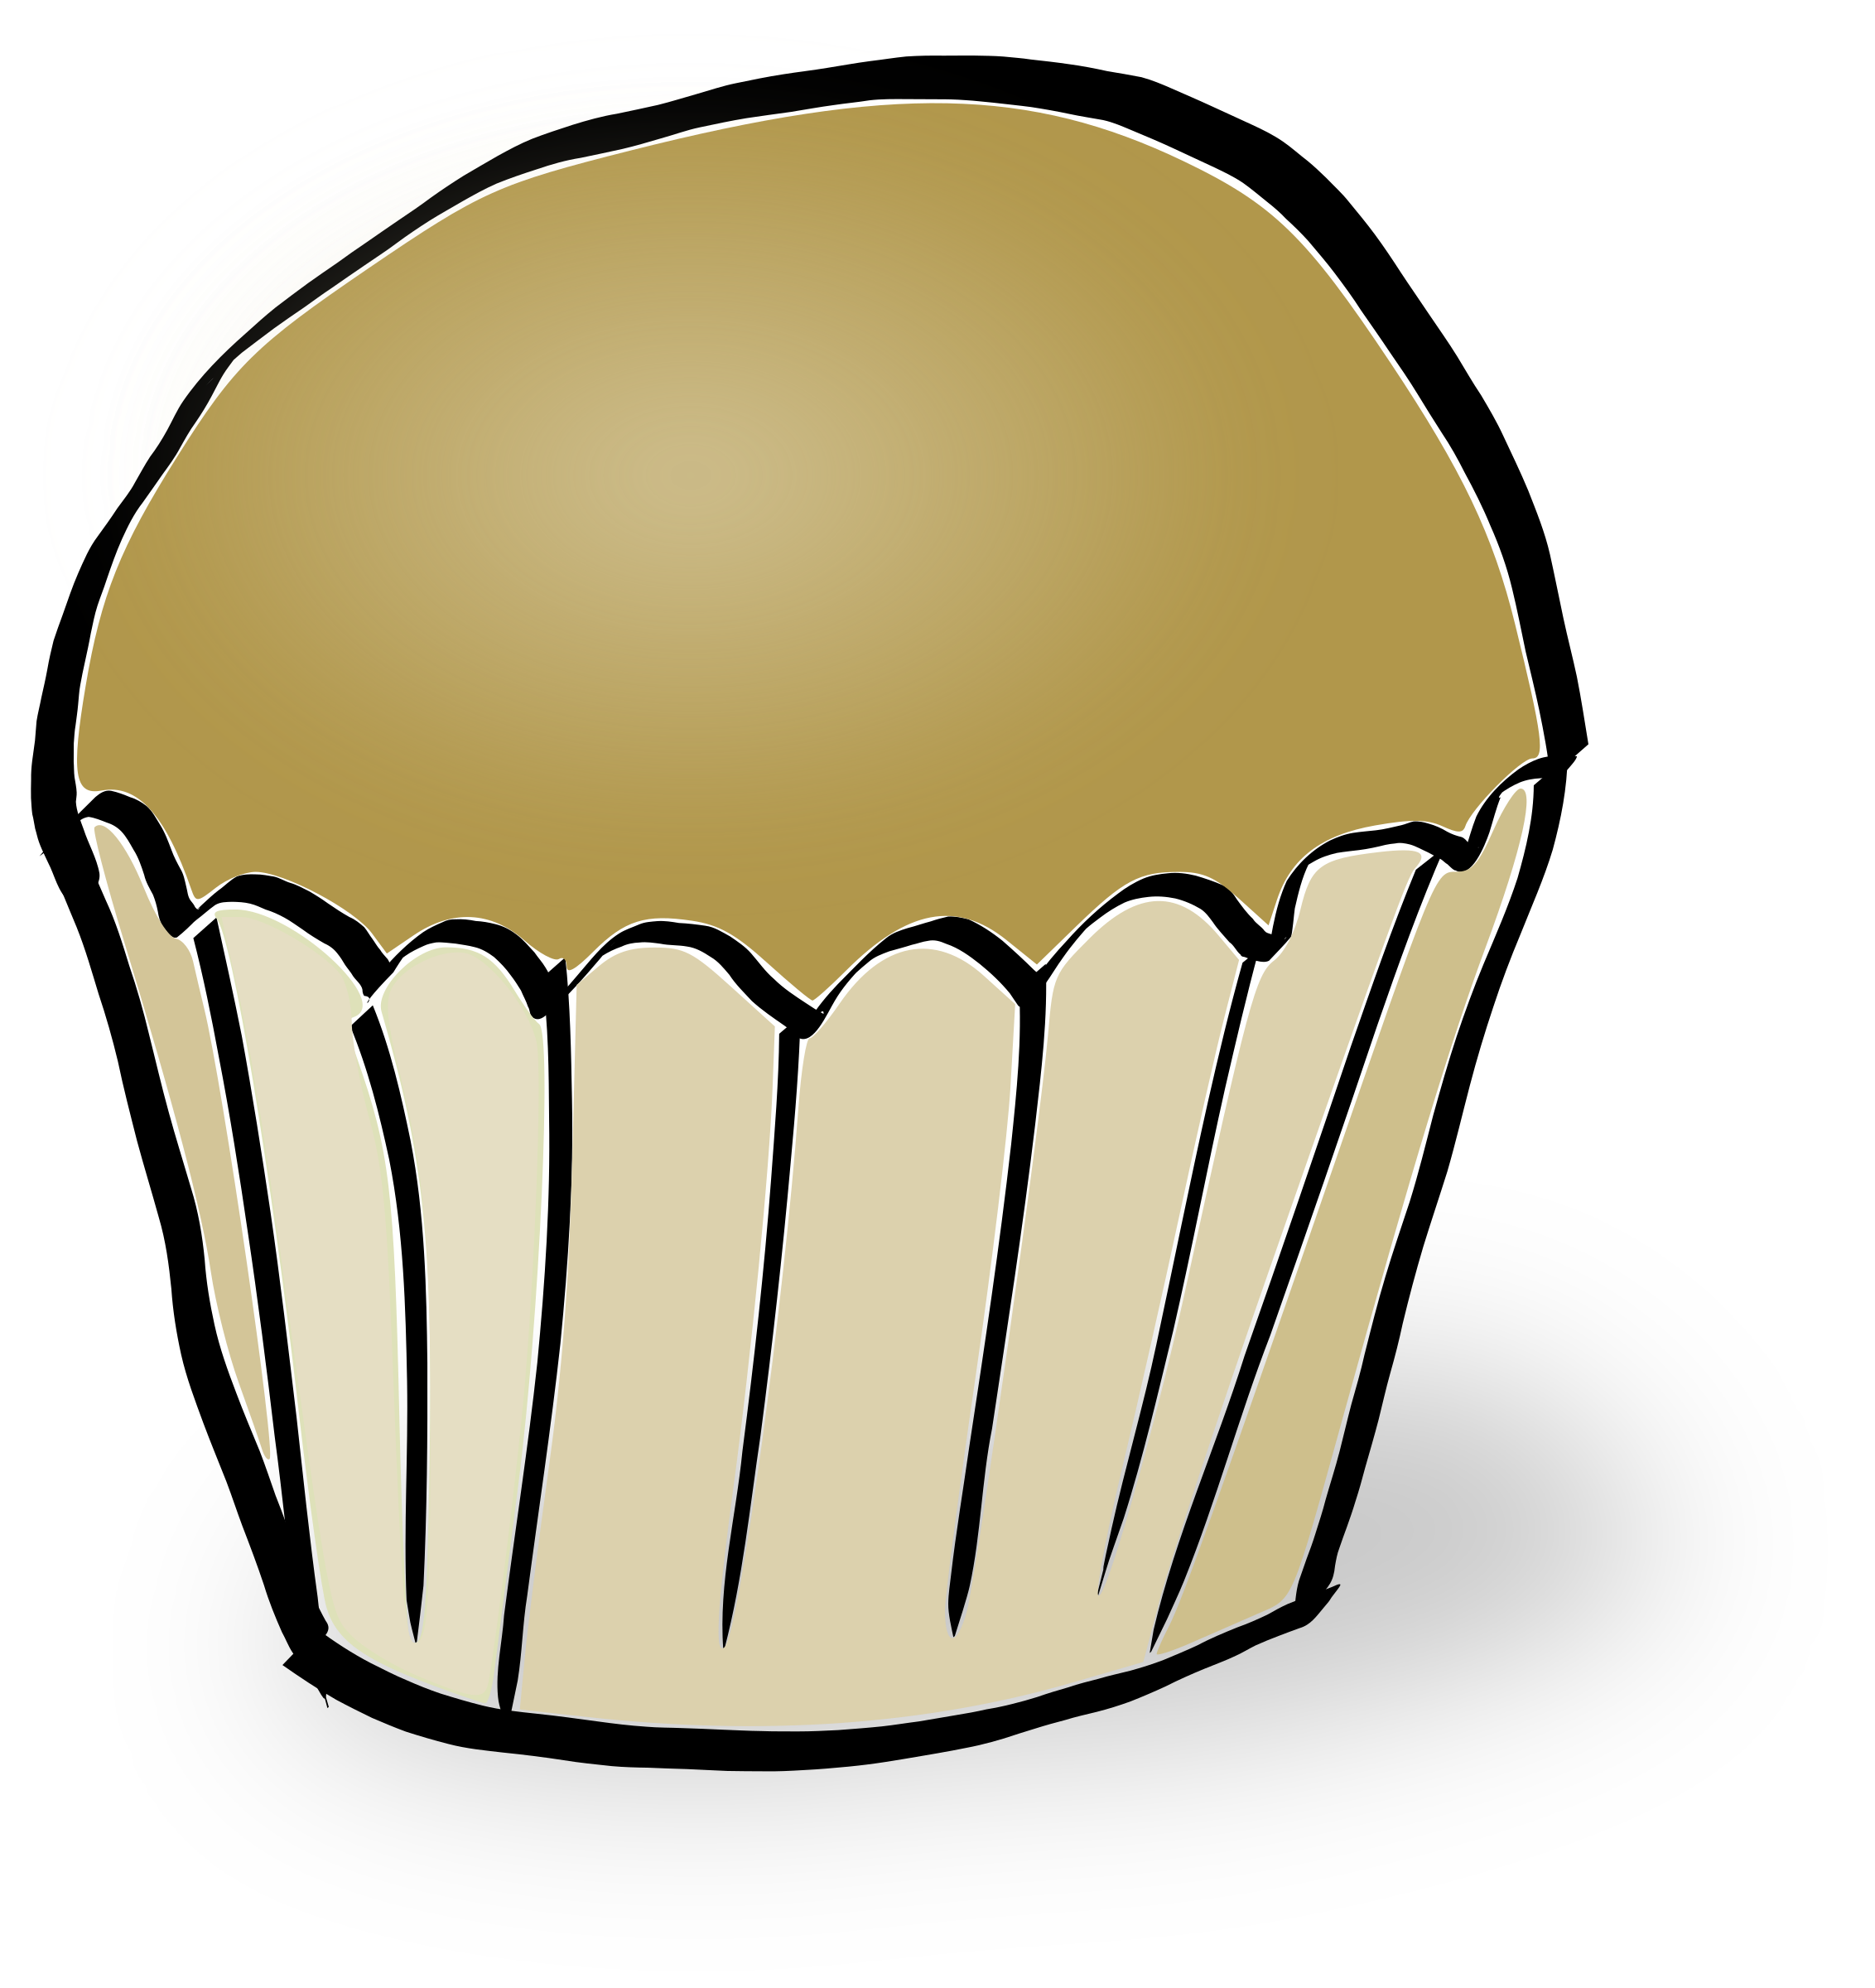 Muffin by rubejar